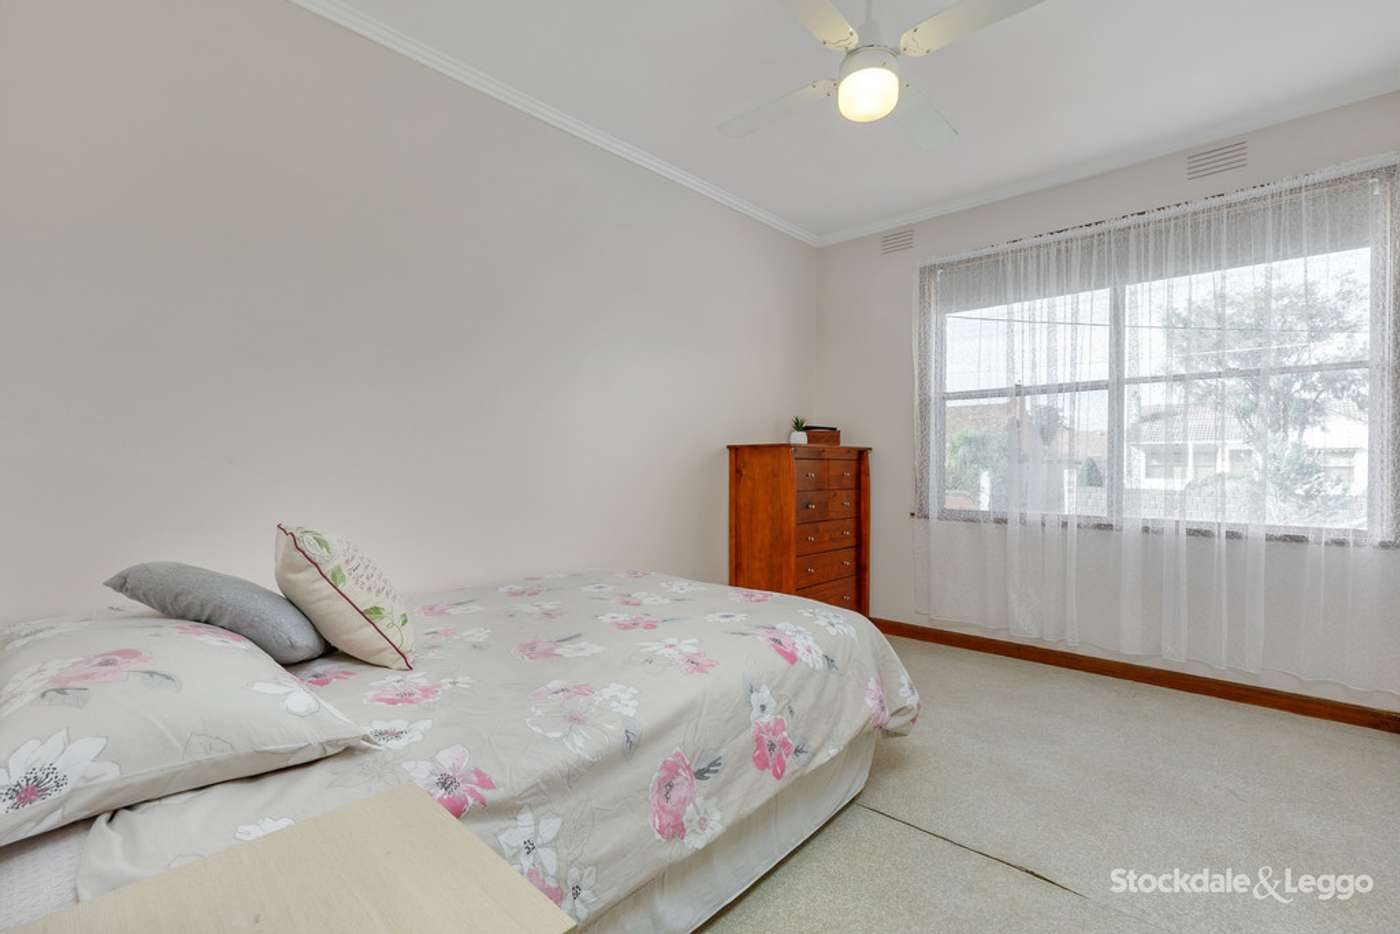 Fifth view of Homely house listing, 11 Lesleigh Street, Fawkner VIC 3060